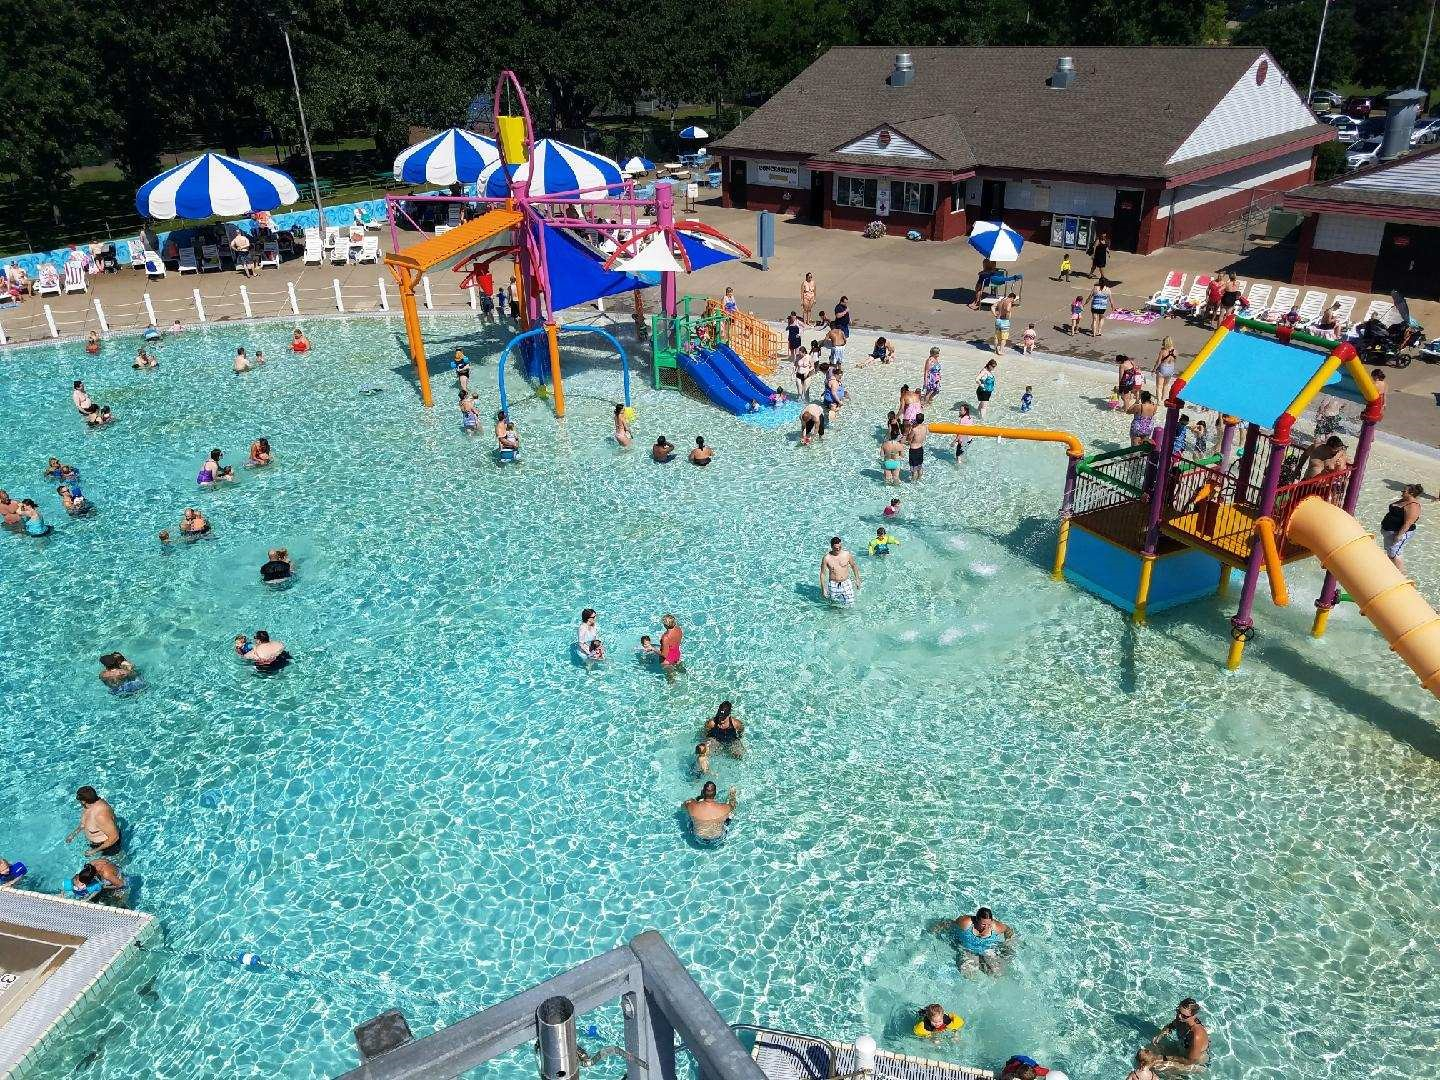 Birds Eye View Overlooking the Aquatic Center